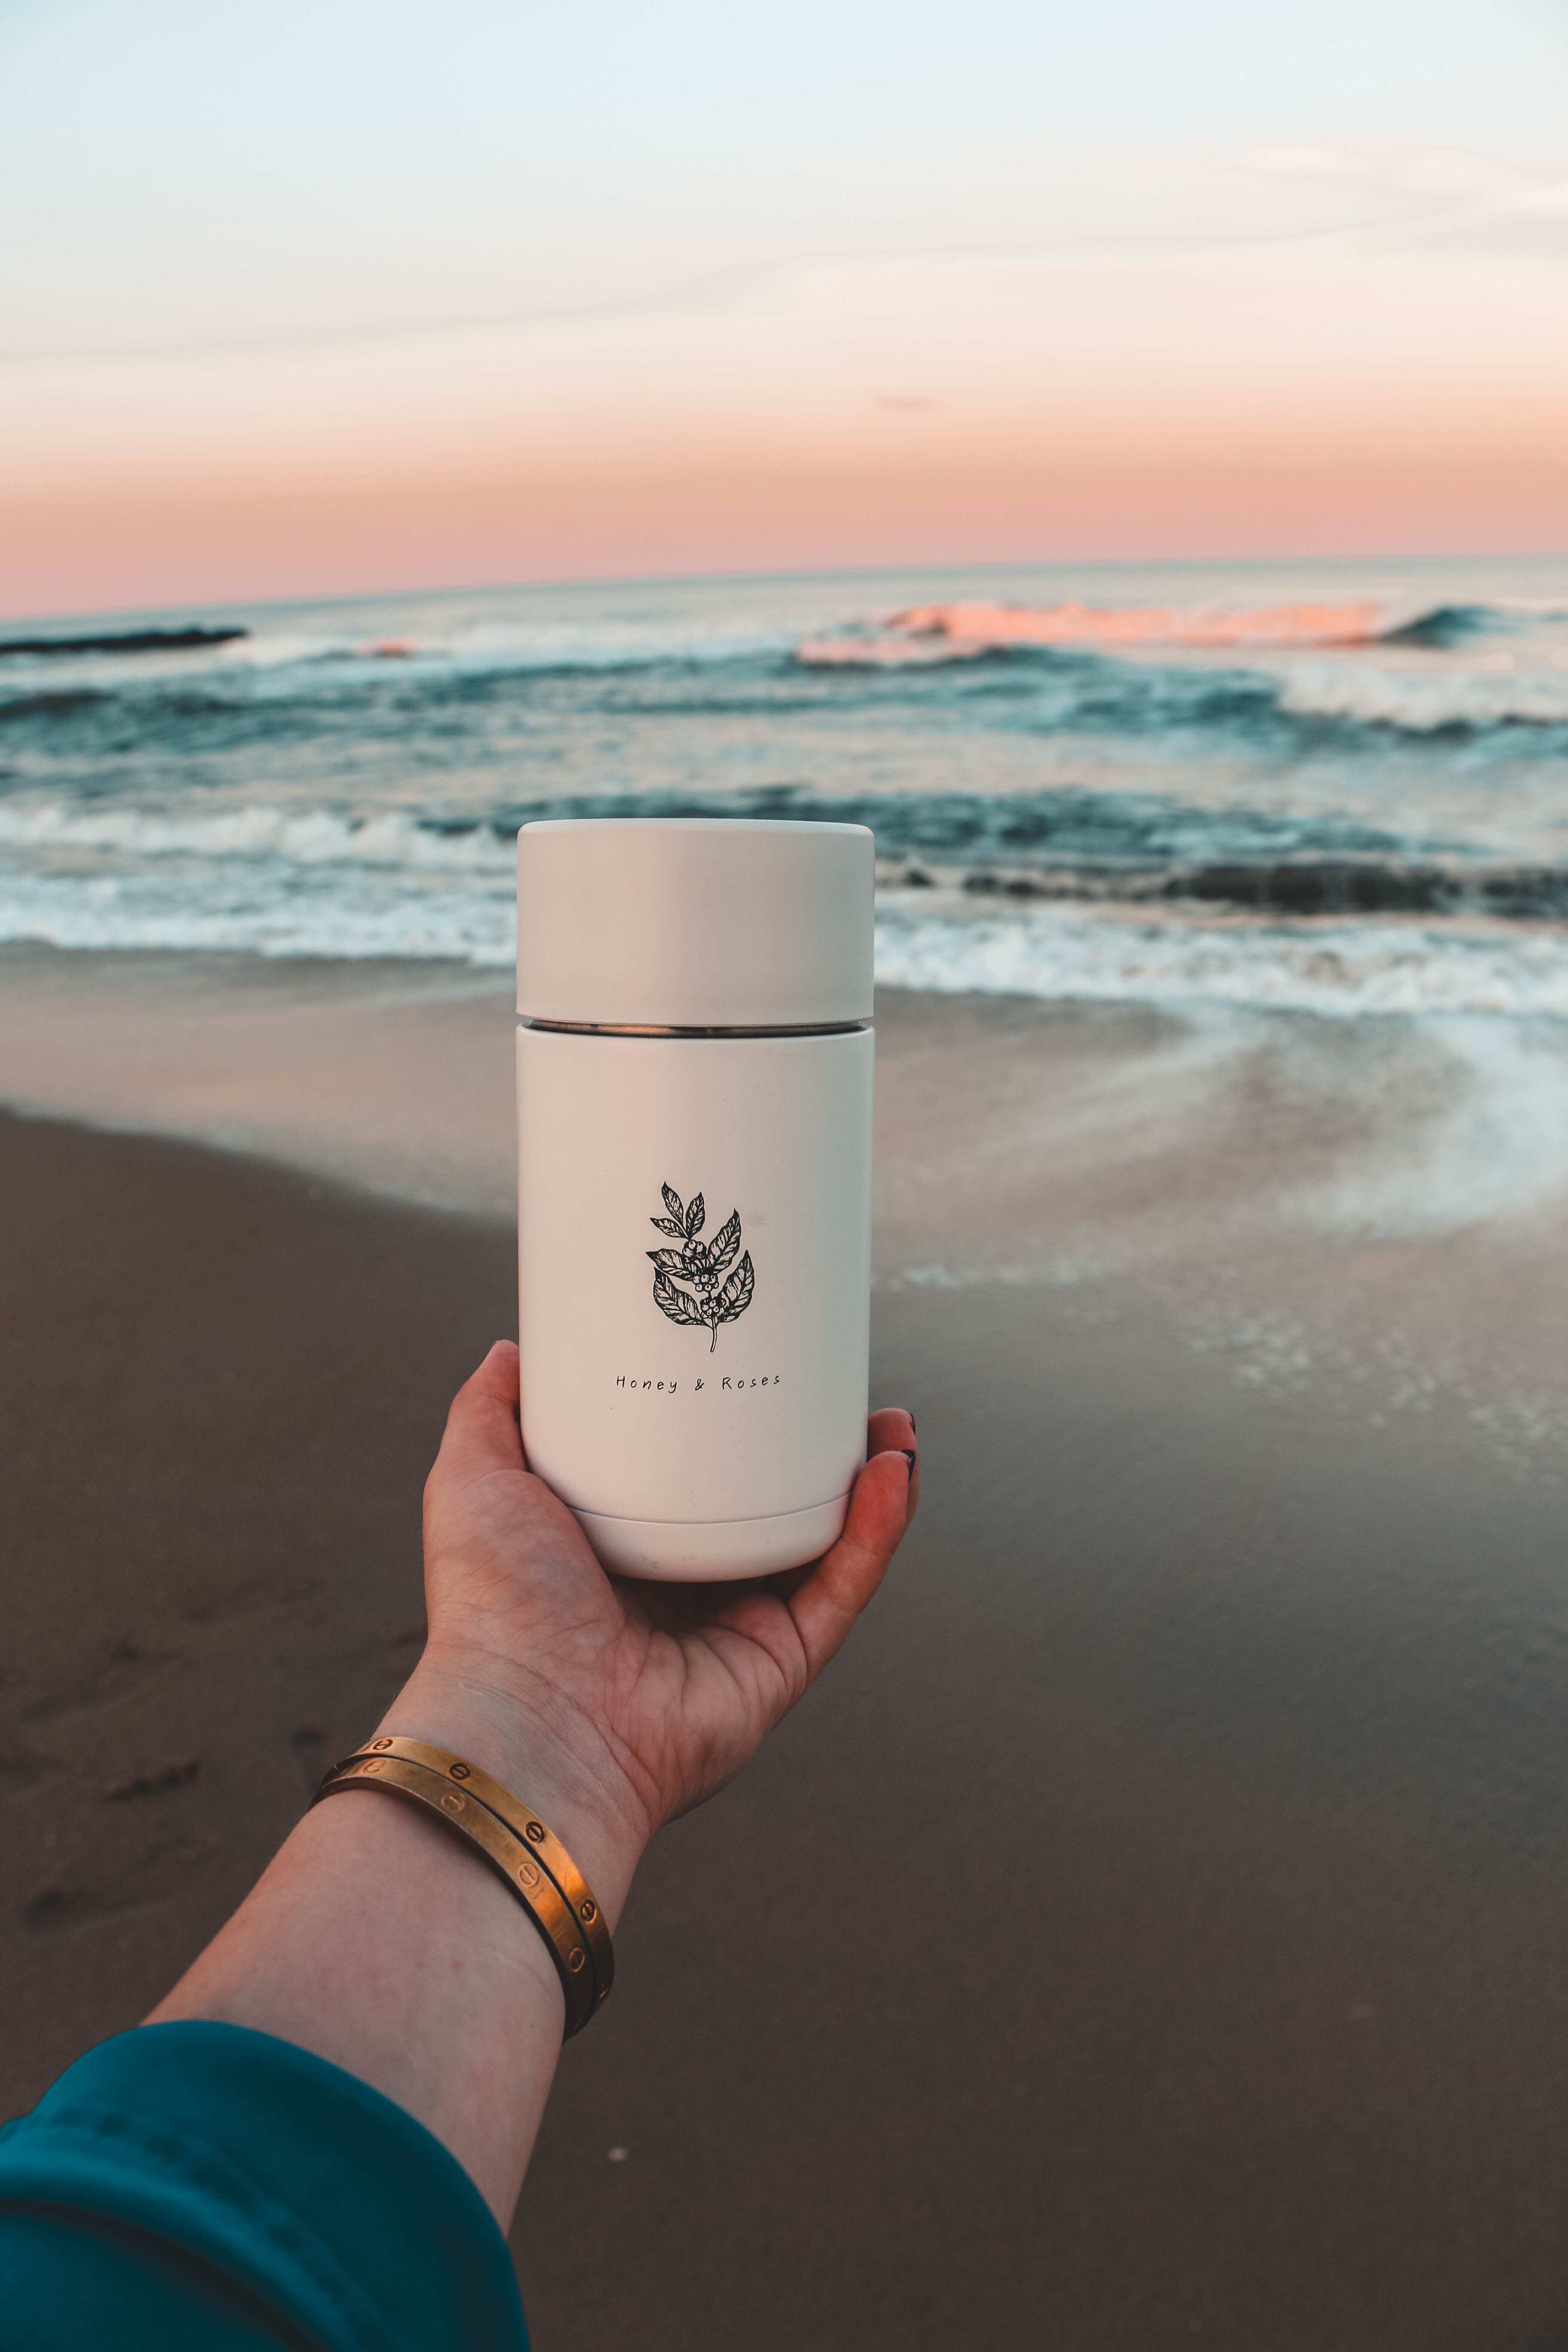 Reusable Coffee Mug Frank Green Ecofriendly Mug Honey Roses Coffee Co Reusable Coffee Cup Coffee Cups Travel Coffee Cup